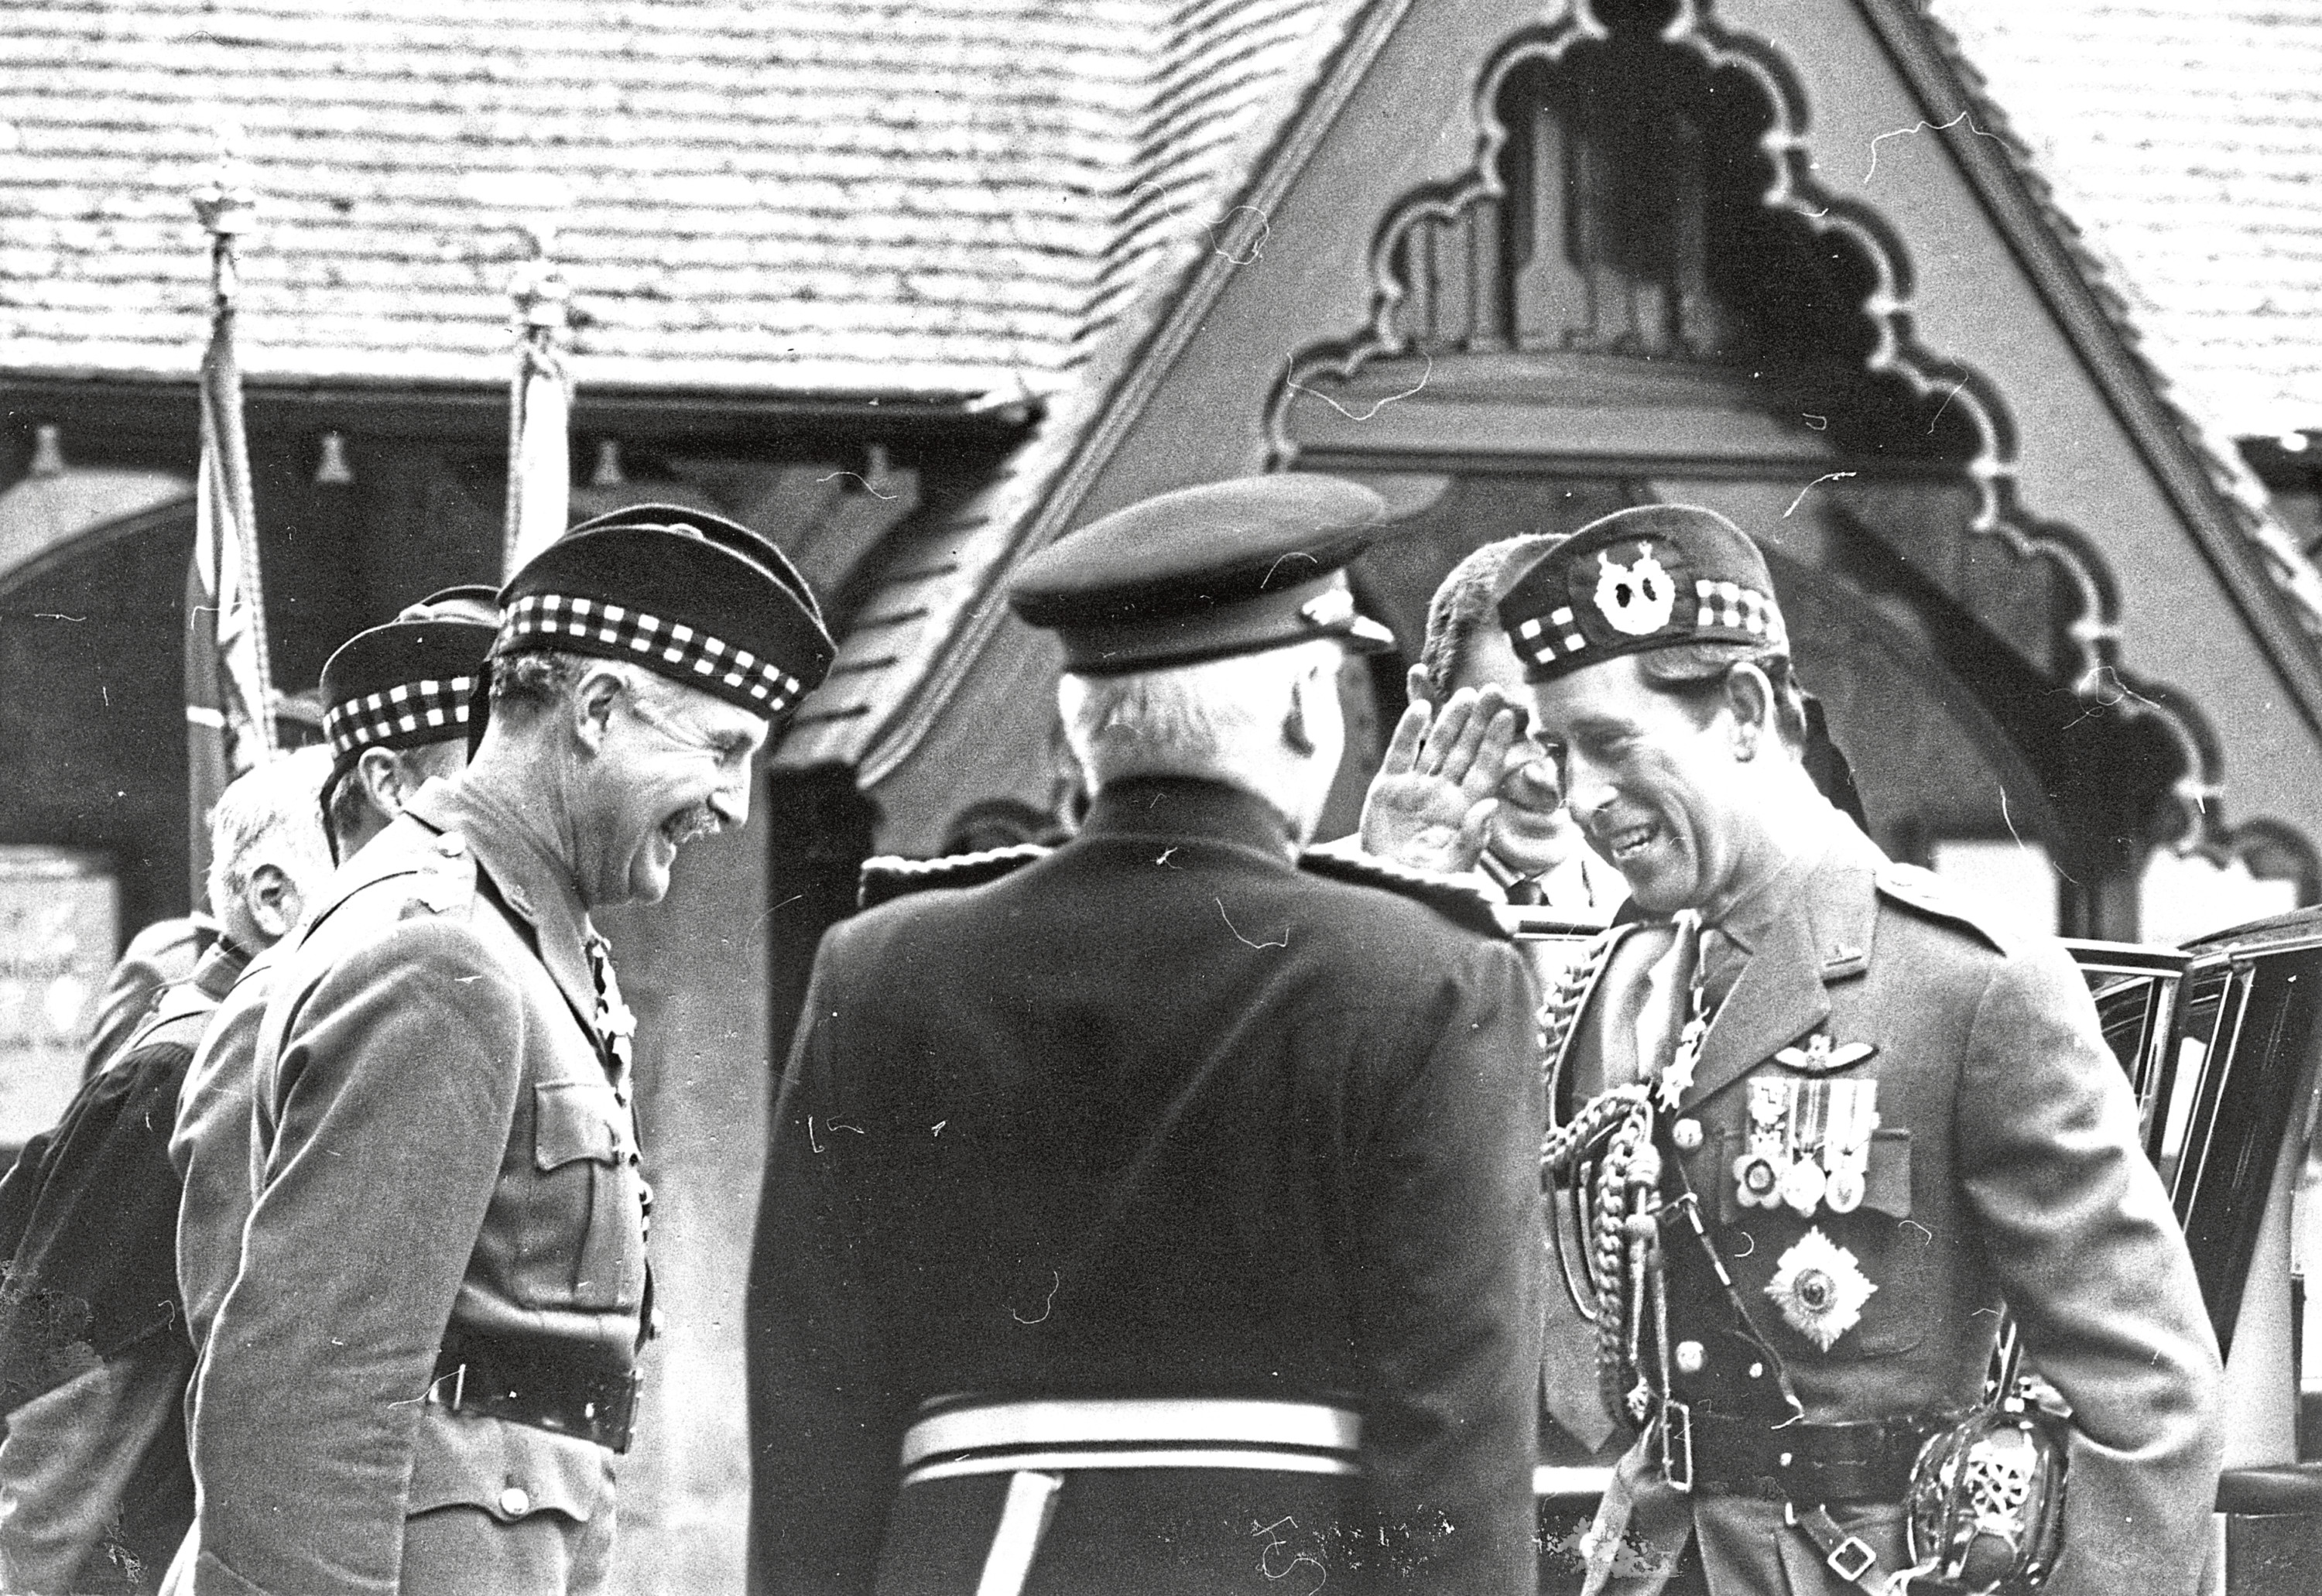 1988: Welcoming the Prince of Wales to Crathie Church are Maj.-Gen. Peter Graham (left), colonel of the 1st Bn. Gordon Highlanders, and Capt. Colin Farquharson (centre), Lord Lieutenant of Aberdeenshire.